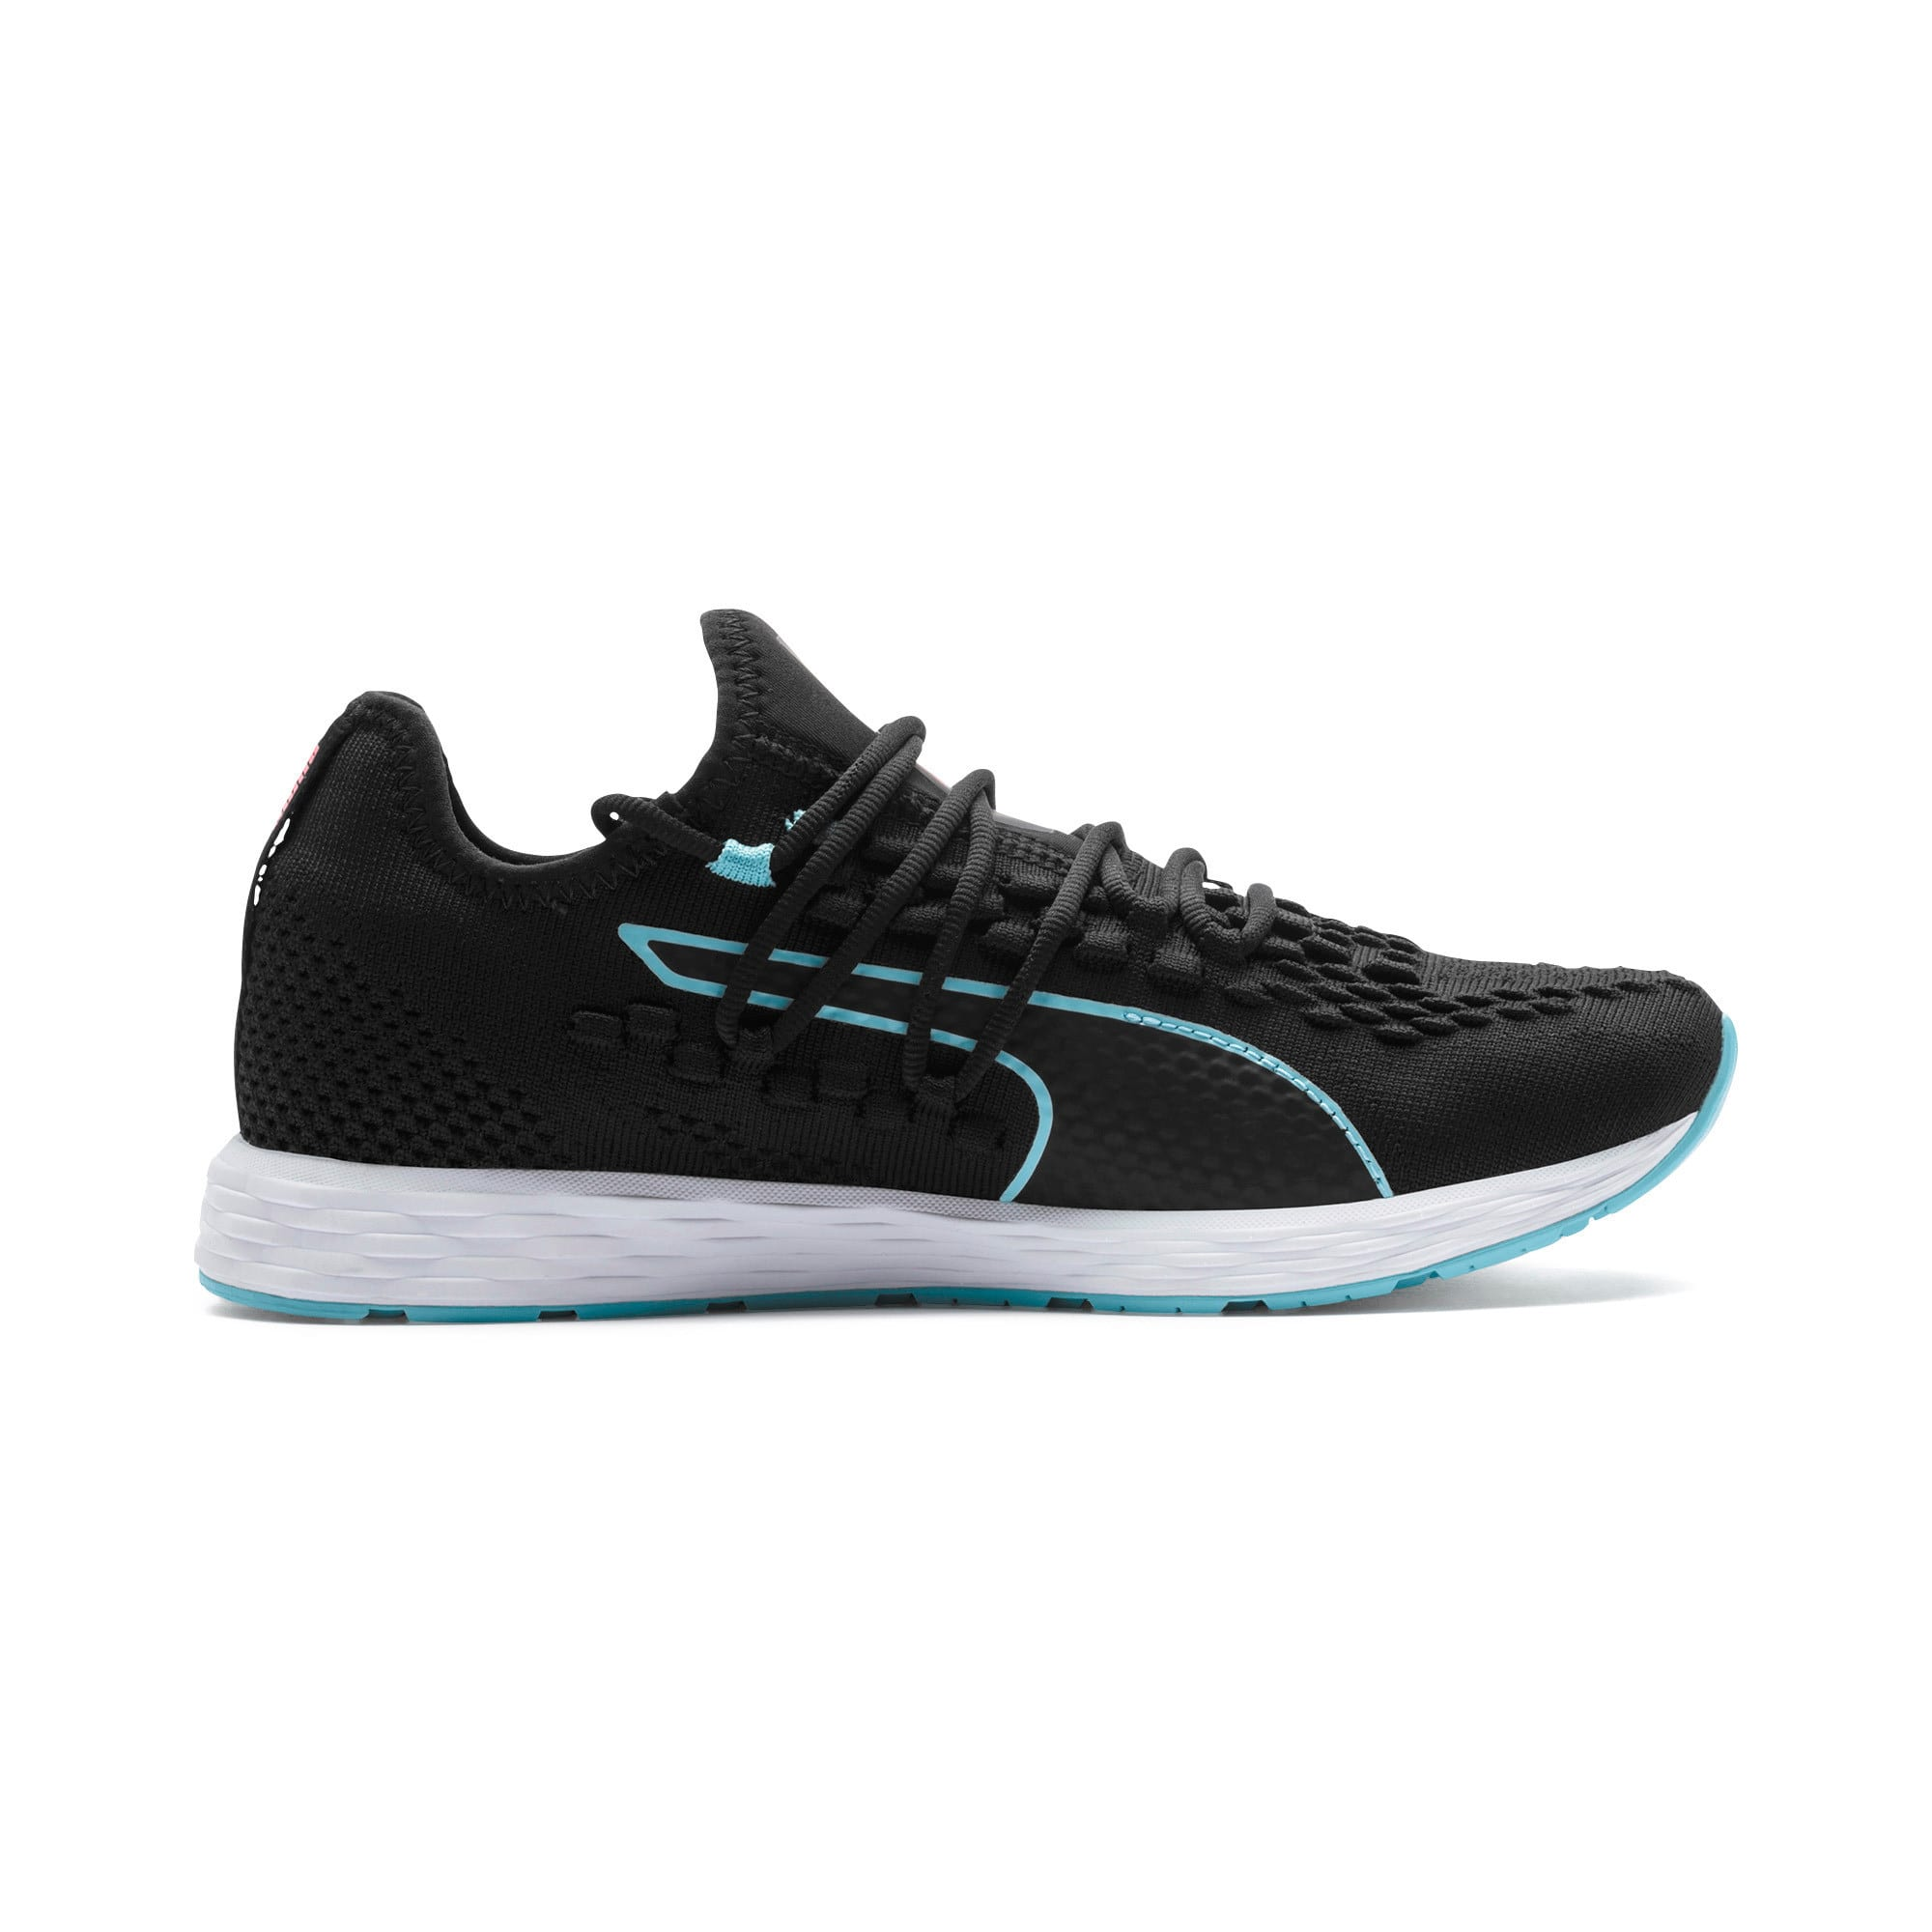 Thumbnail 6 of SPEED RACER Women's Running Shoes, Black-Milky Blue-Pink Alert, medium